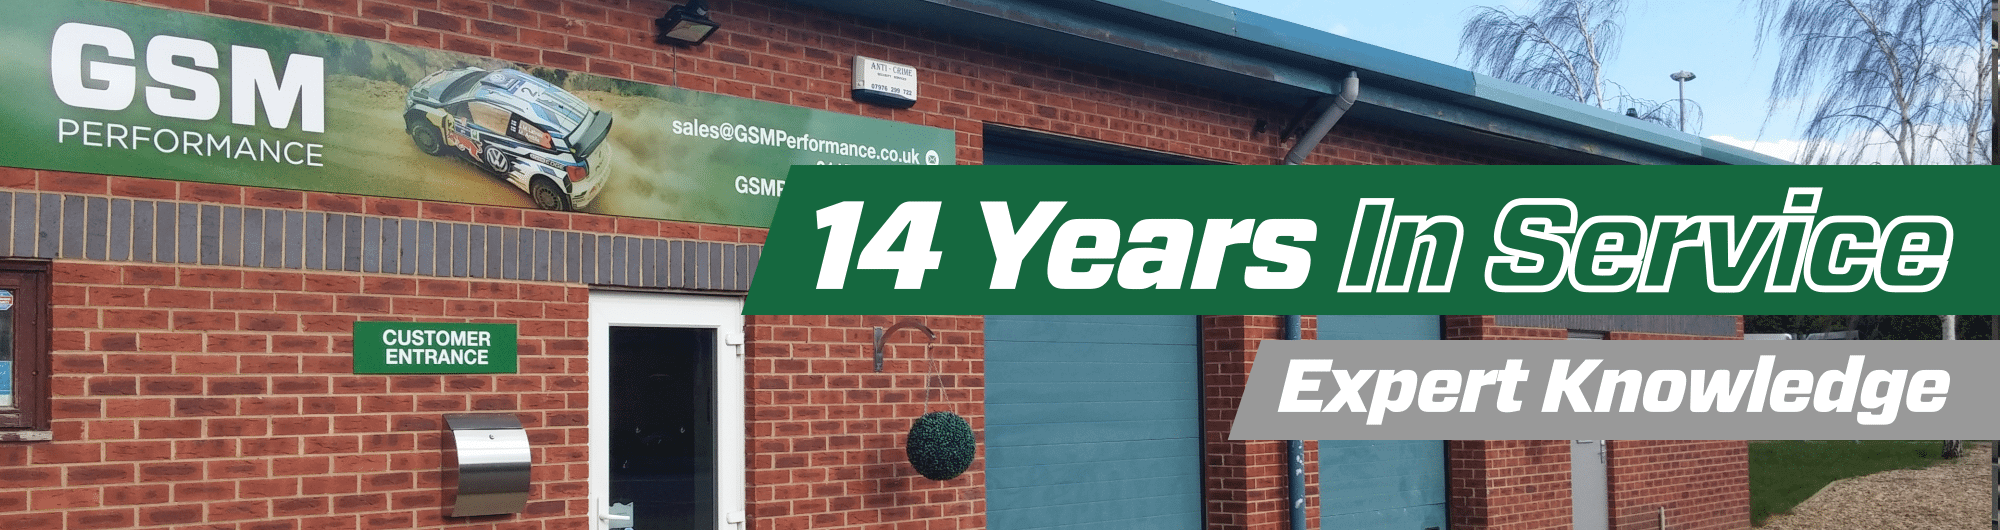 14 Years in Service – Expert Knowledge – www.gsmperformance.co.uk Hero Image – October 2017